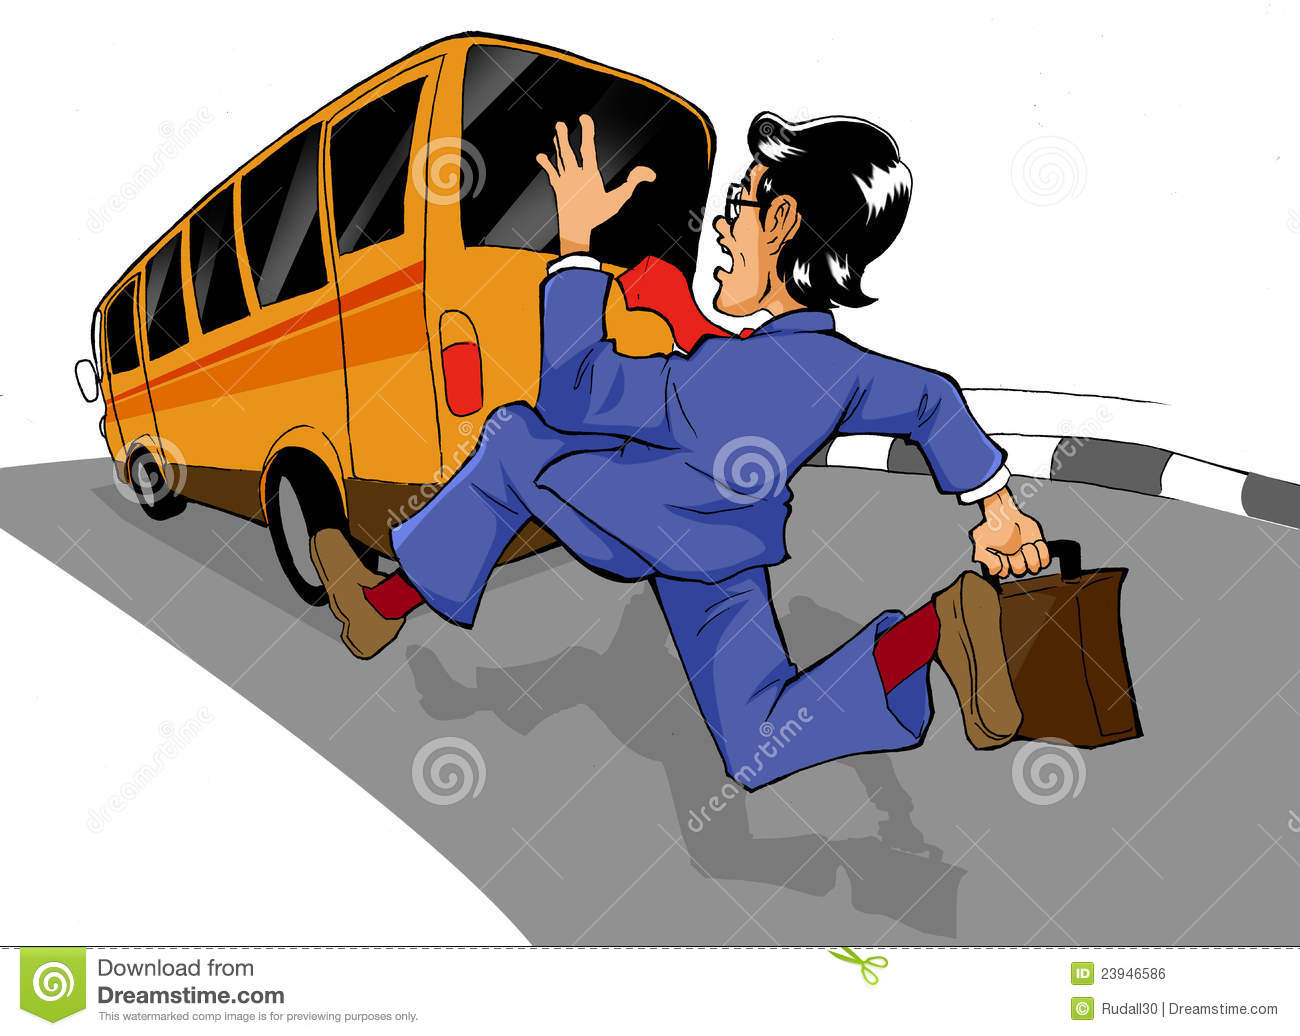 Chasing The Bus Royalty Free Stock Image - Image: 23946586